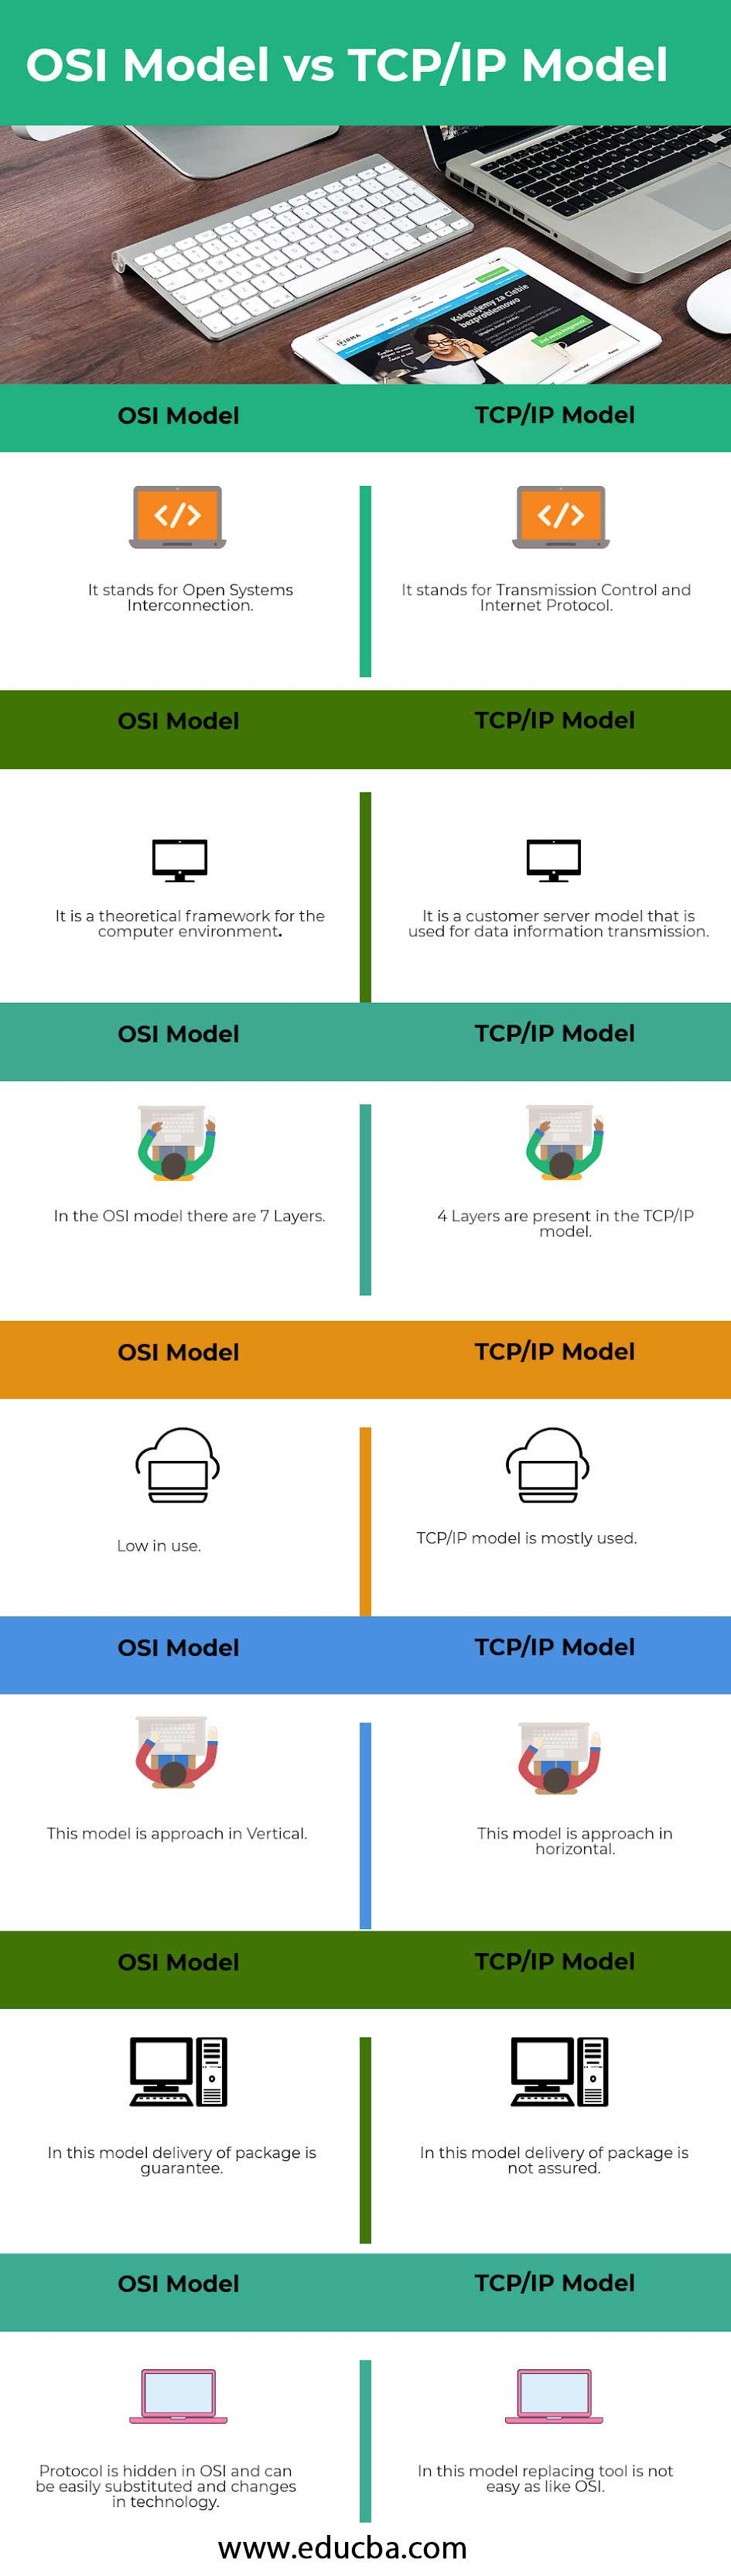 OSI-Model-vs-TCPIP Model-info